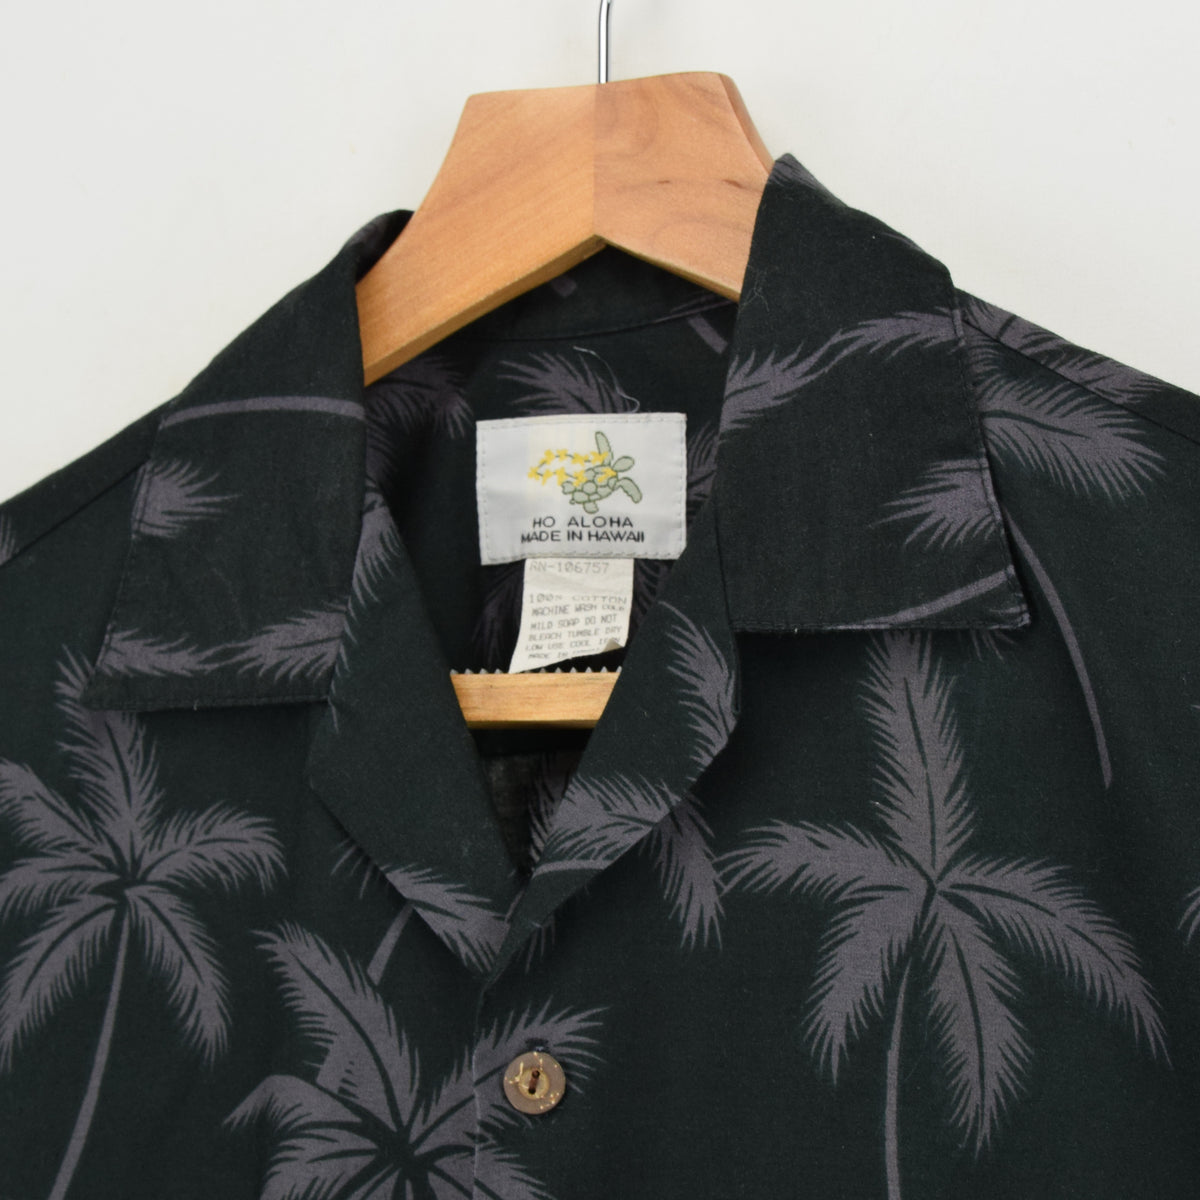 Vintage Hawaiian Beach Aloha Holiday Shirt Made in USA Short Sleeve S collar